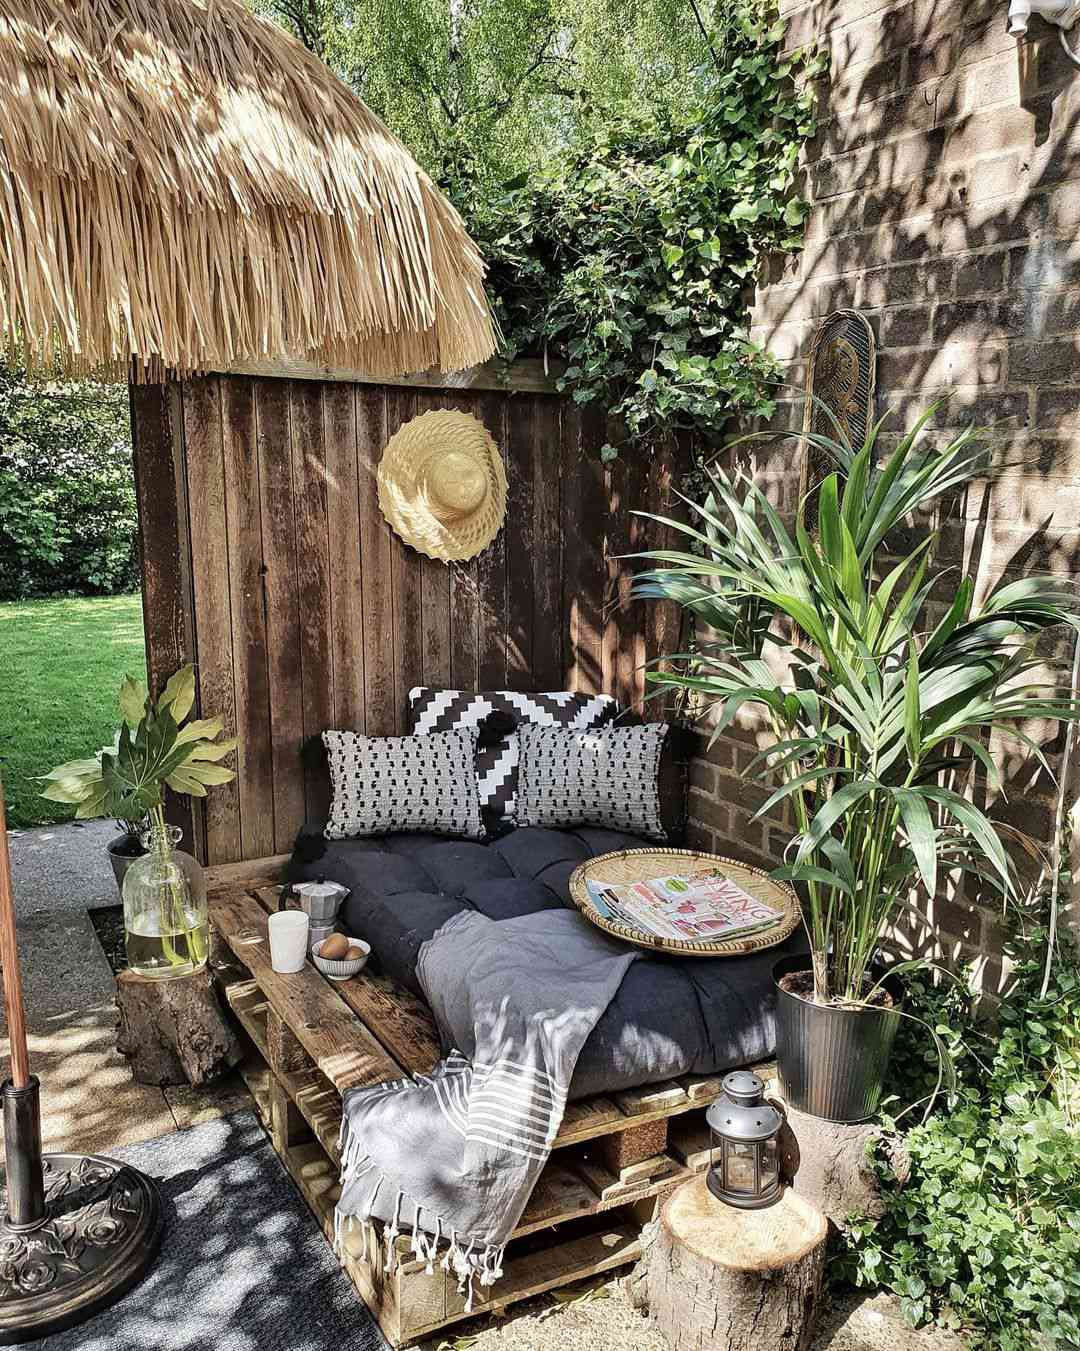 SUSAP privacy fence